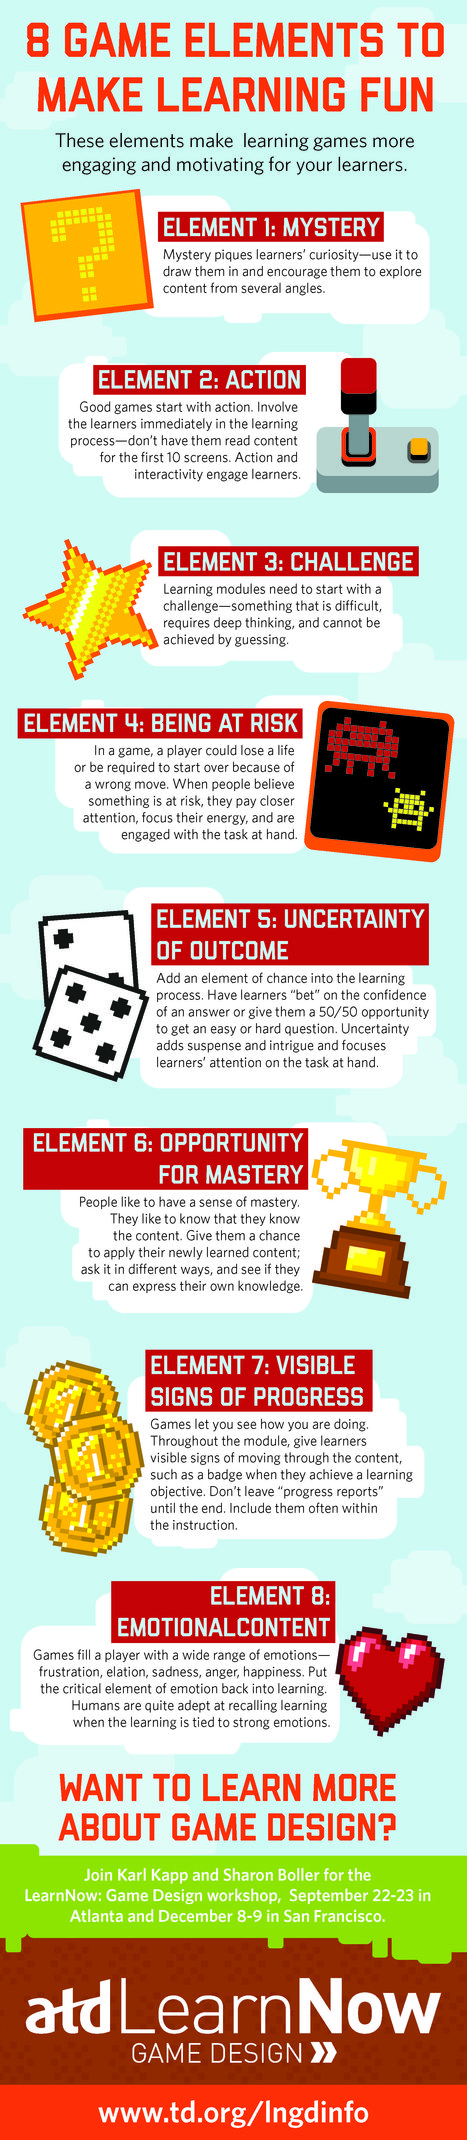 8 Game Elements to Make Learning Fun | Learning is Fun and Games | Scoop.it